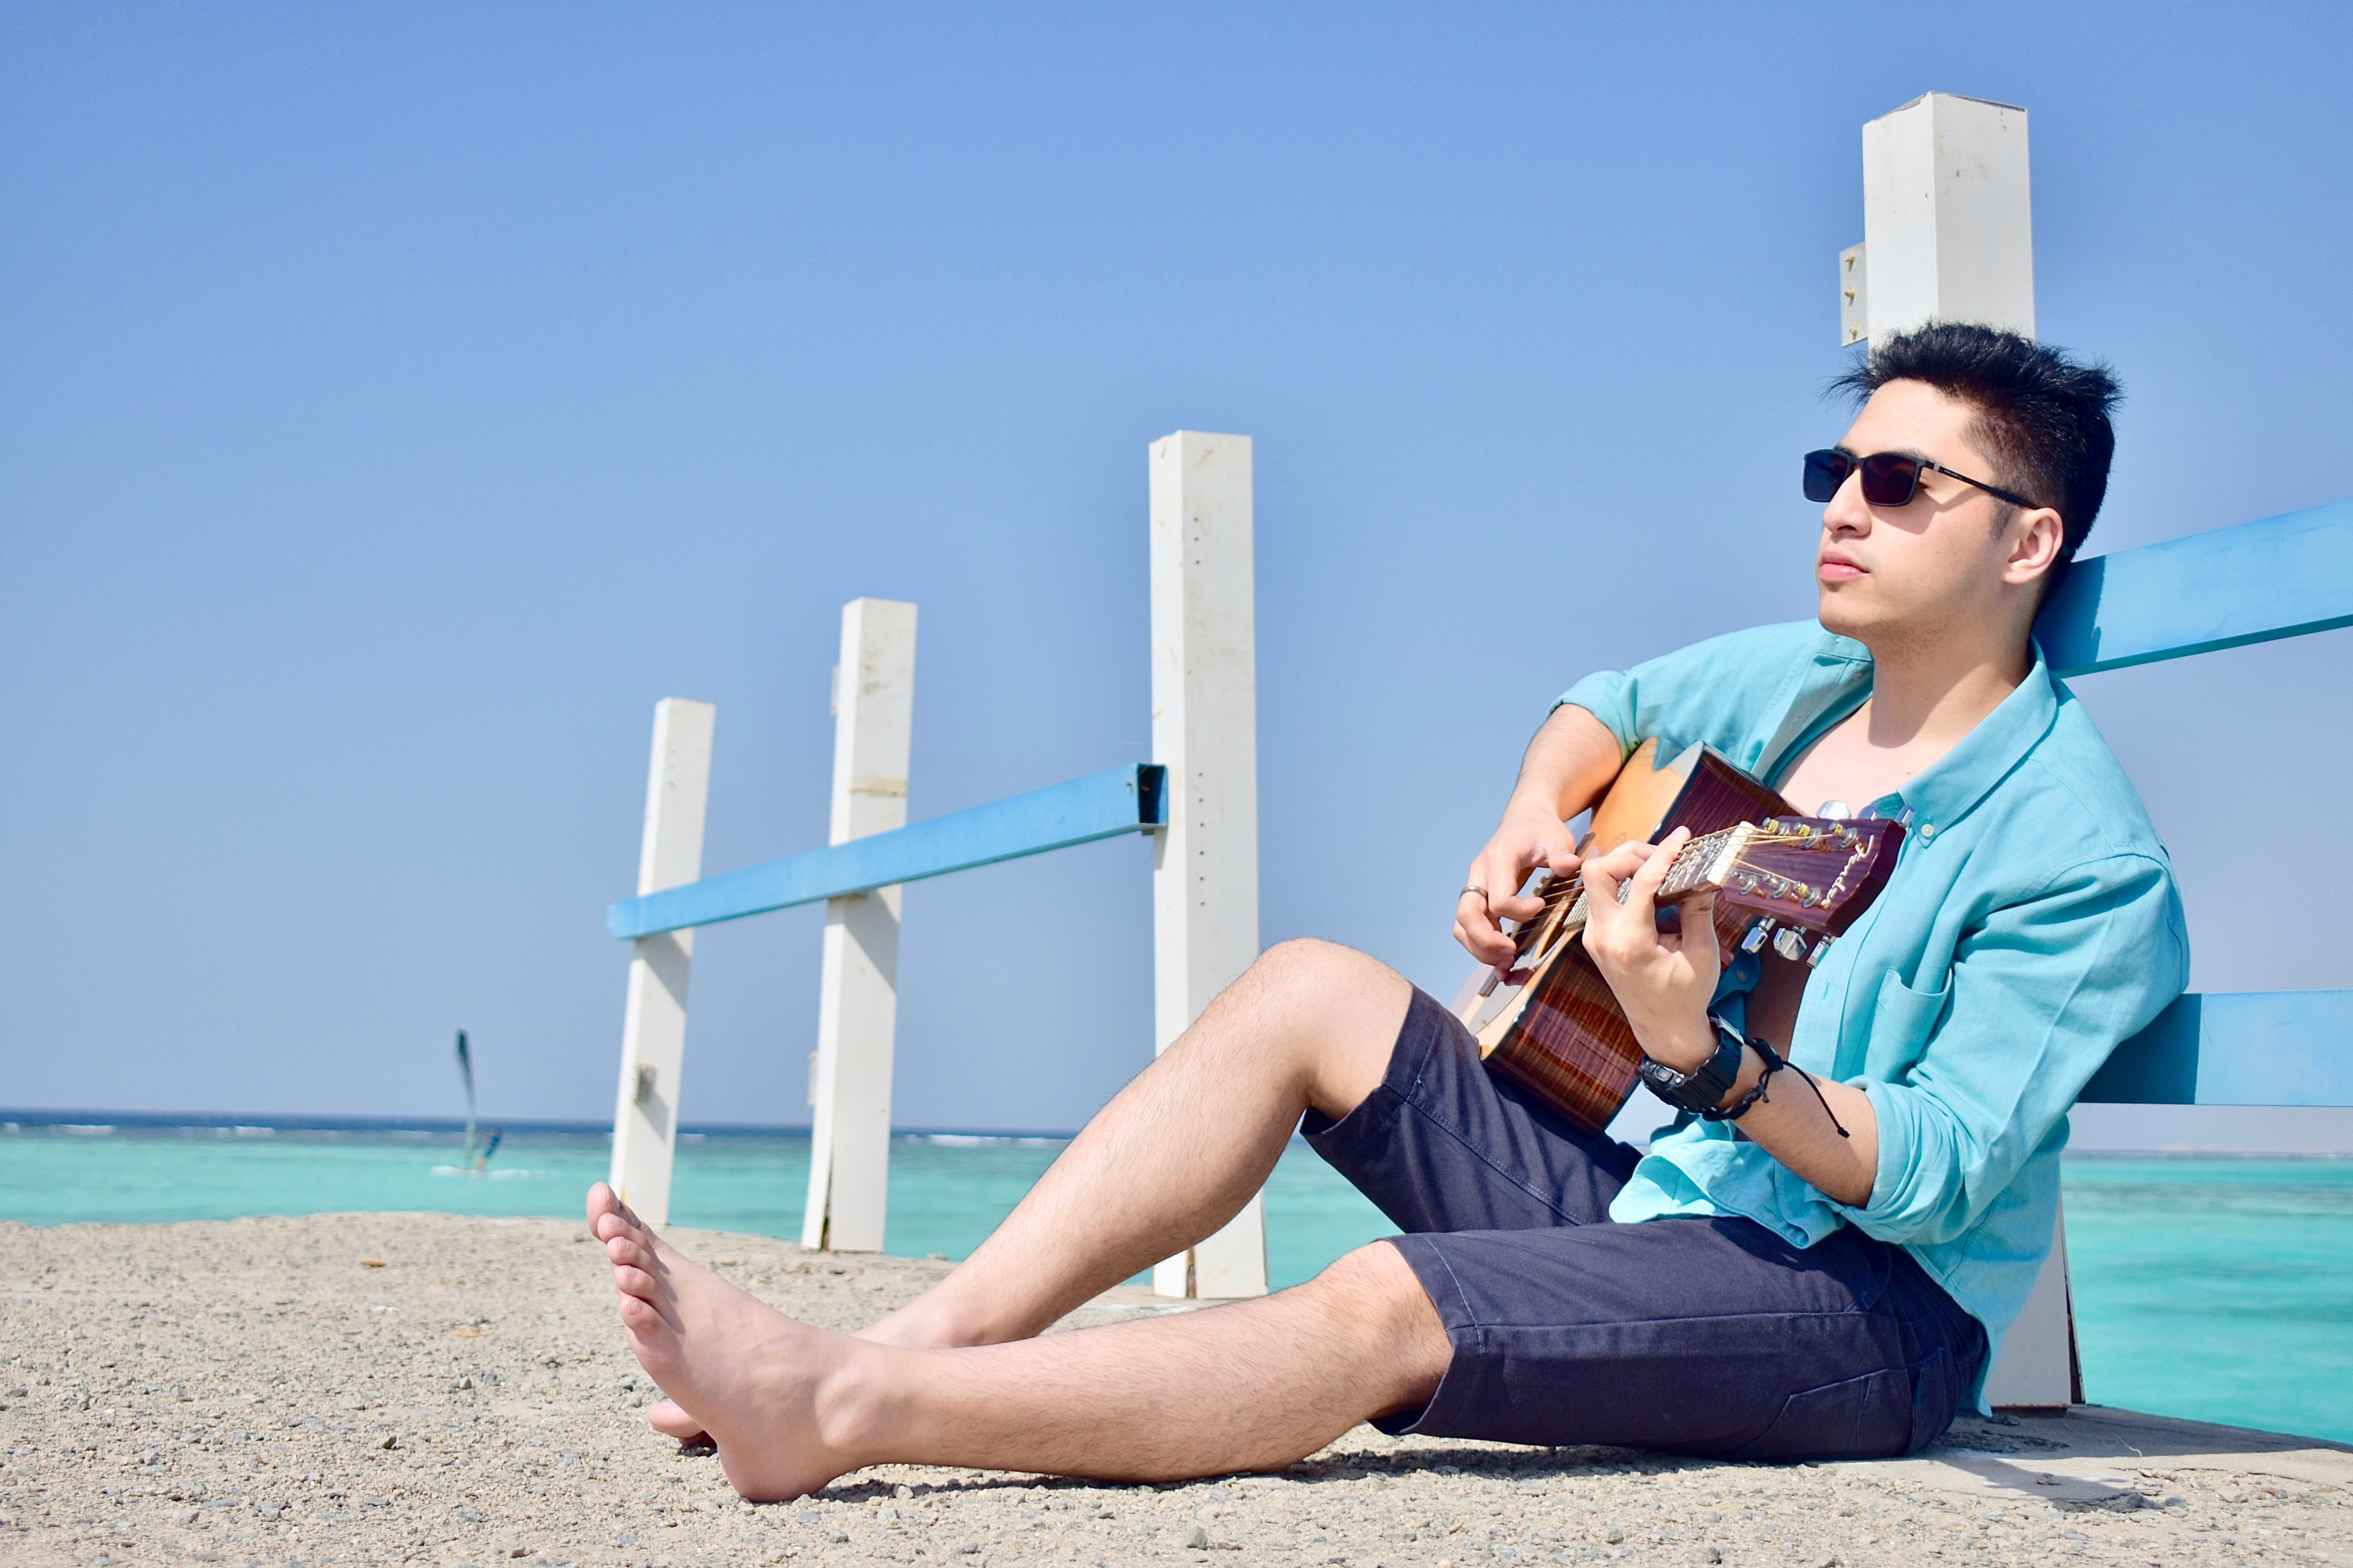 A man playing guitar in the pier during summer